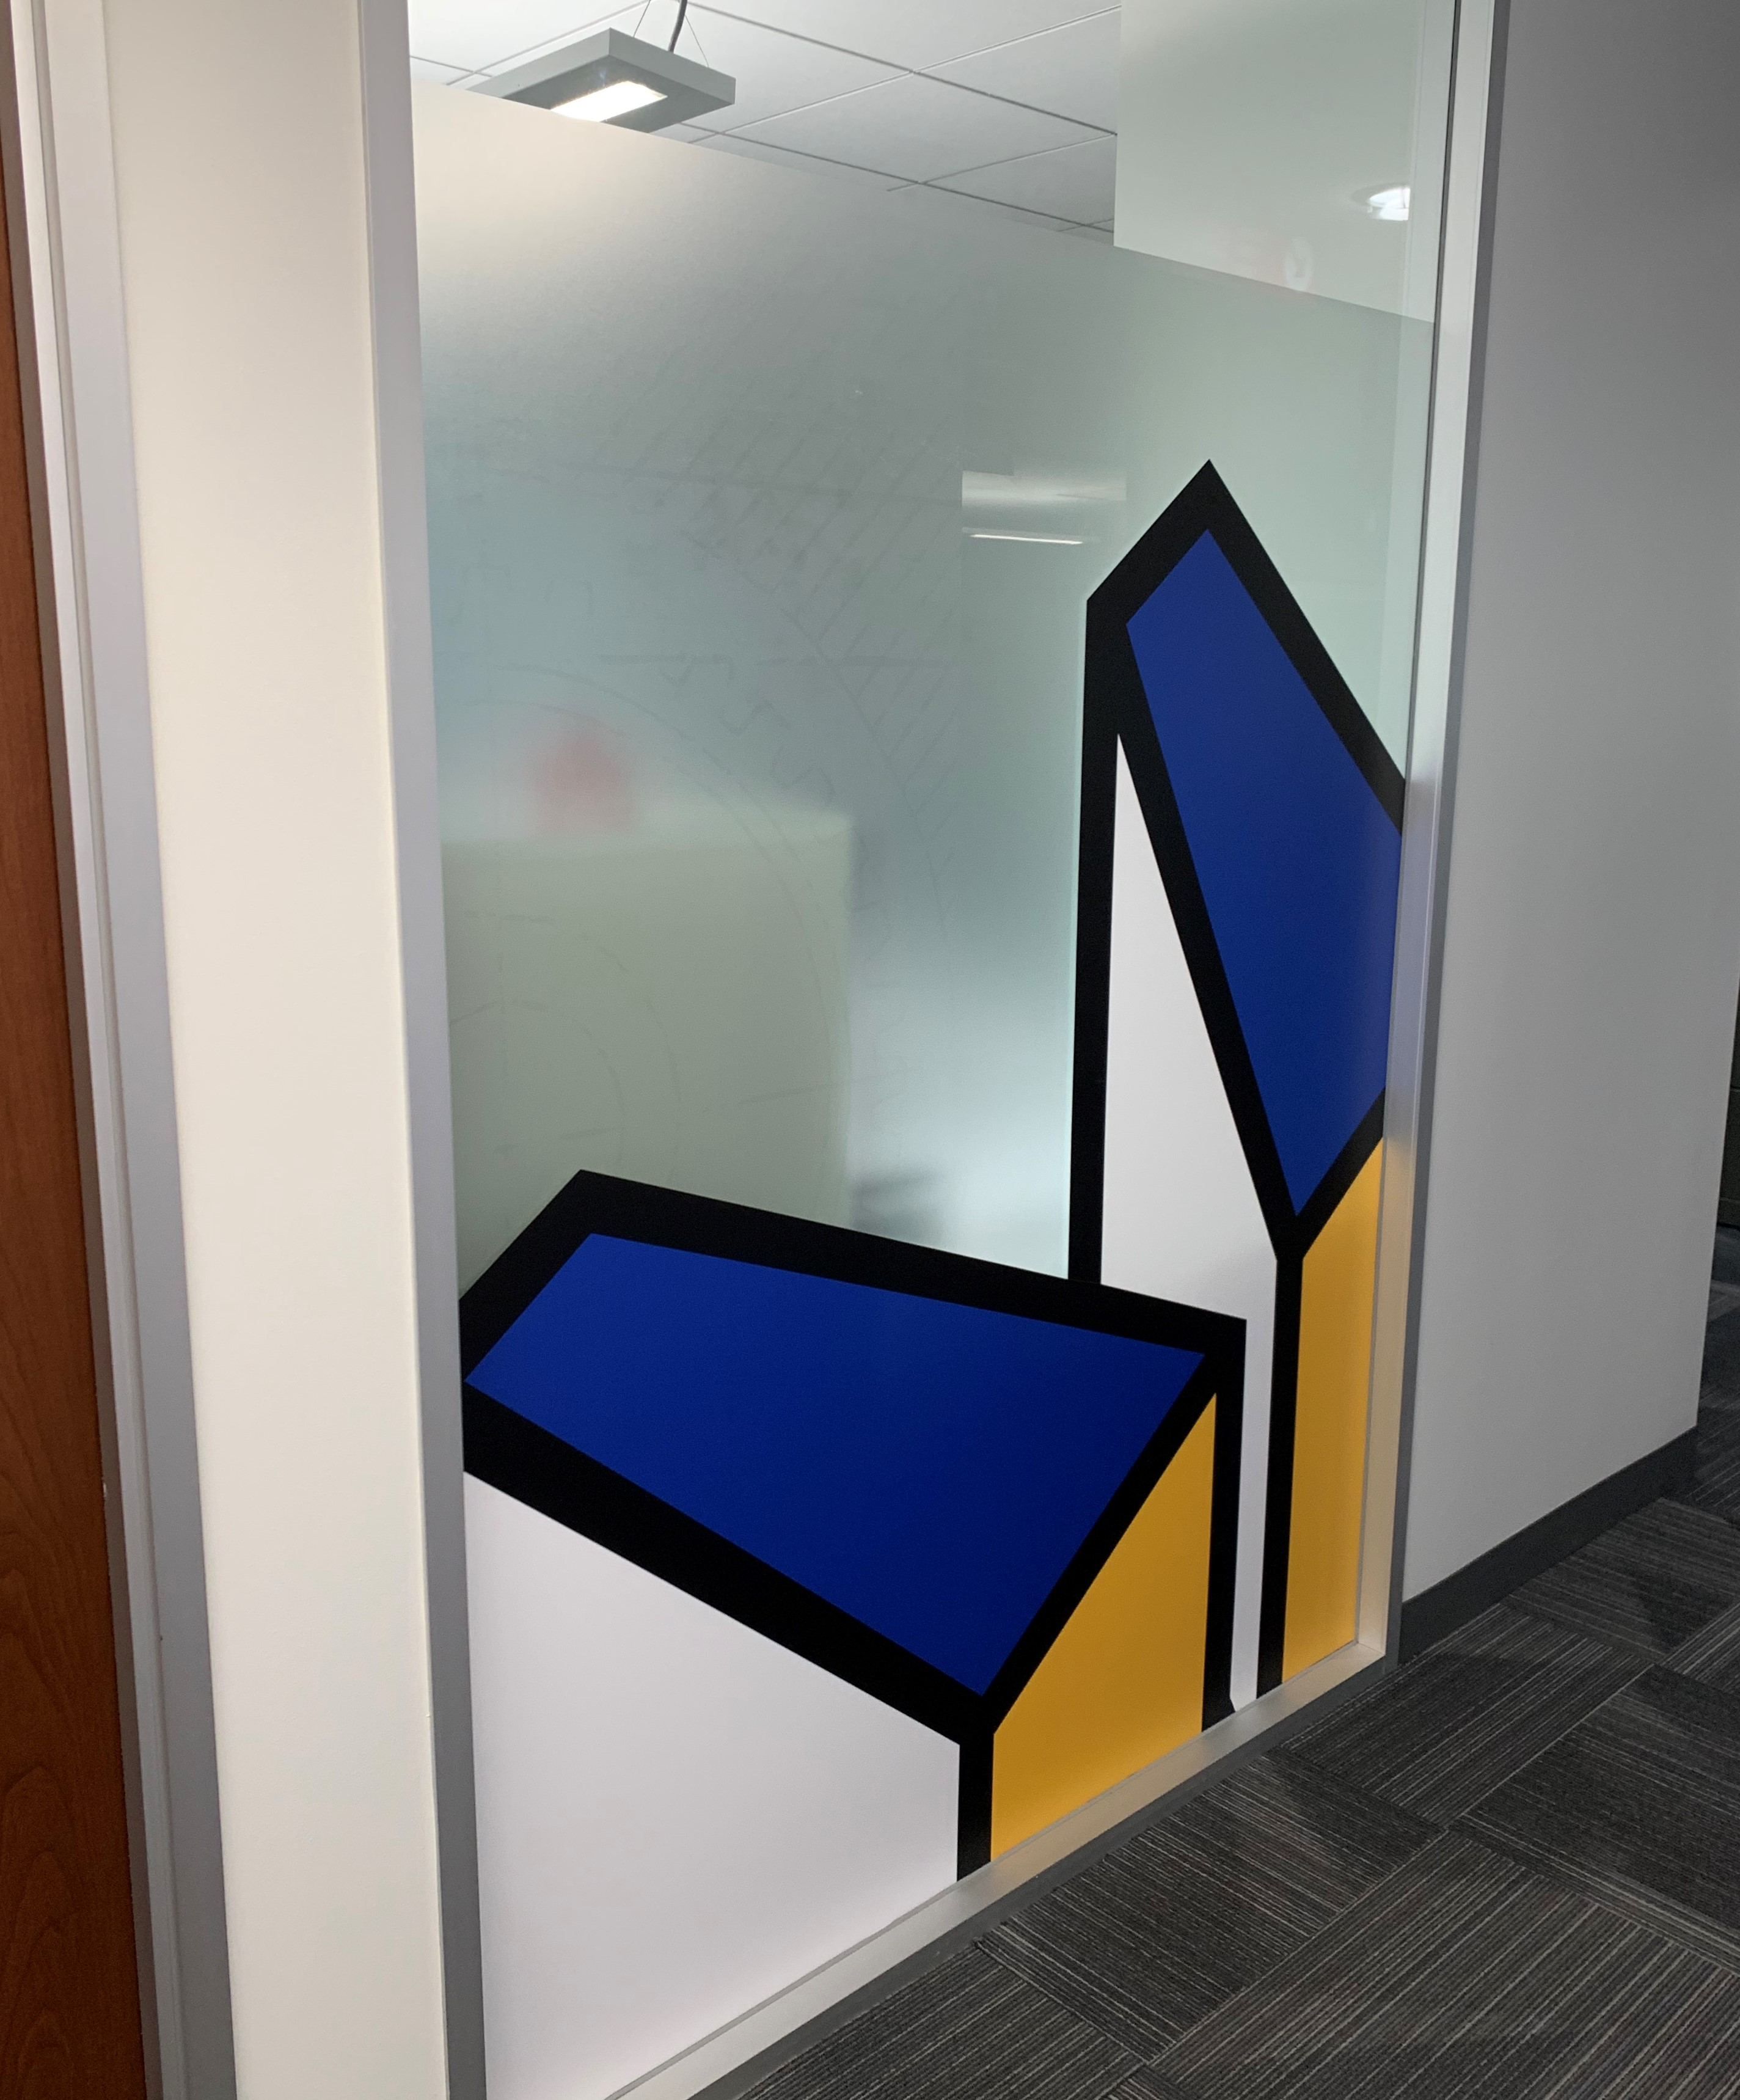 Conference Room Wall Graphic